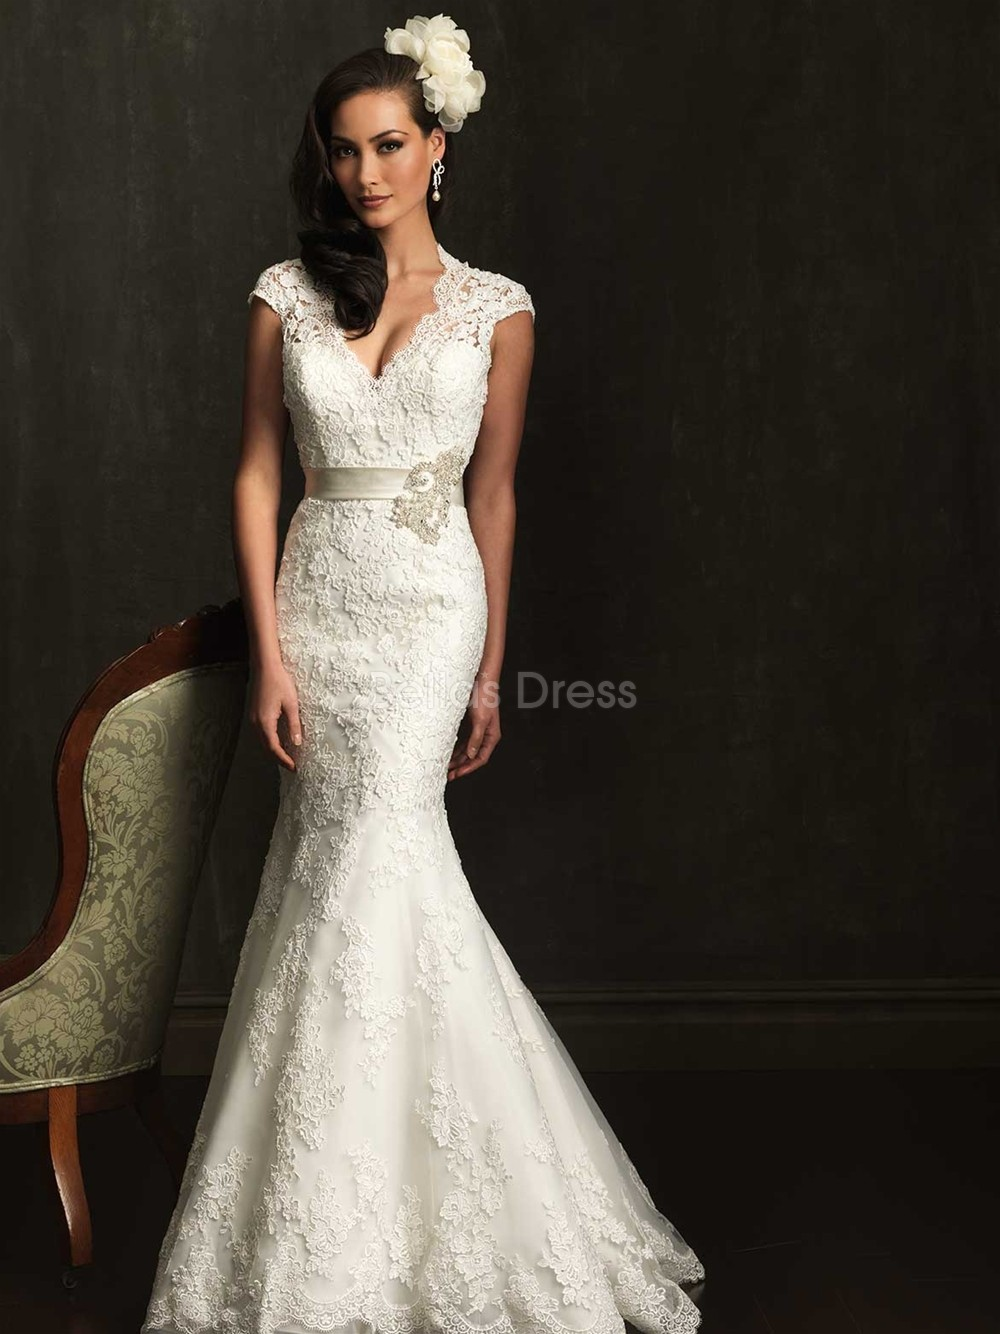 Wedding Dresses  Lace Sleeves : Lace mermaid wedding dress with short sleeves sang maestro